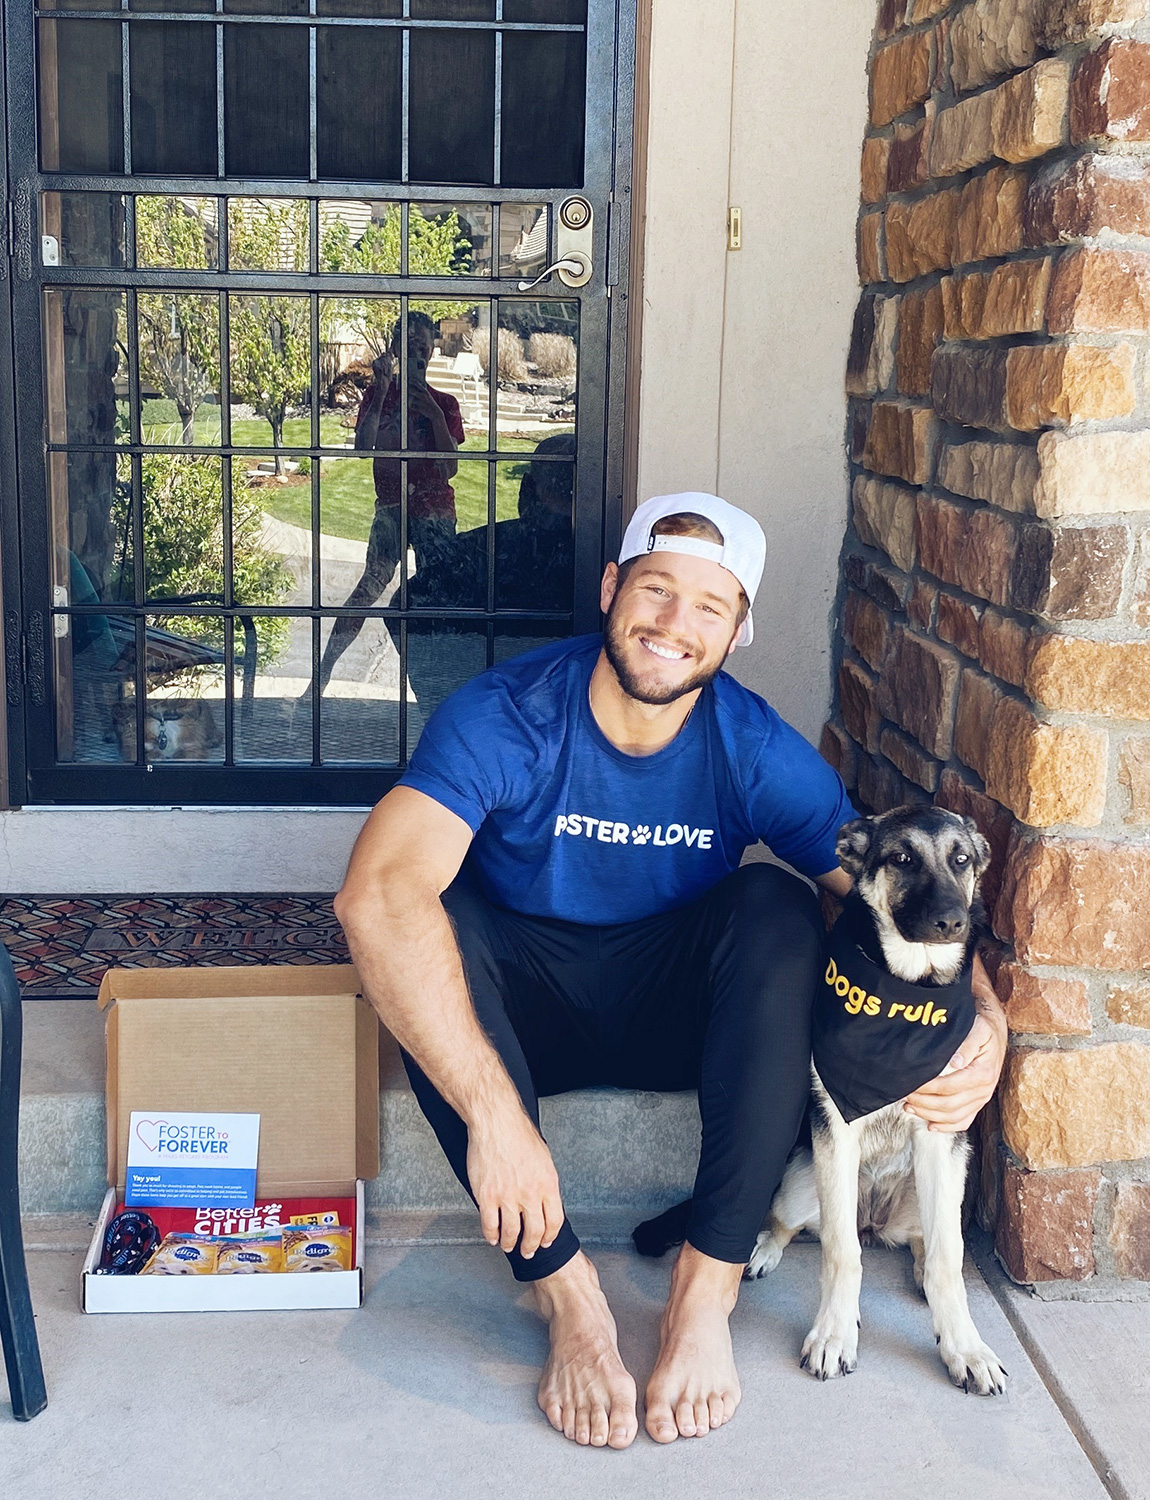 Colton Underwood and Zooka support Mars Petcare's FOSTER TO FOREVER™ program to encourage pet adoptions